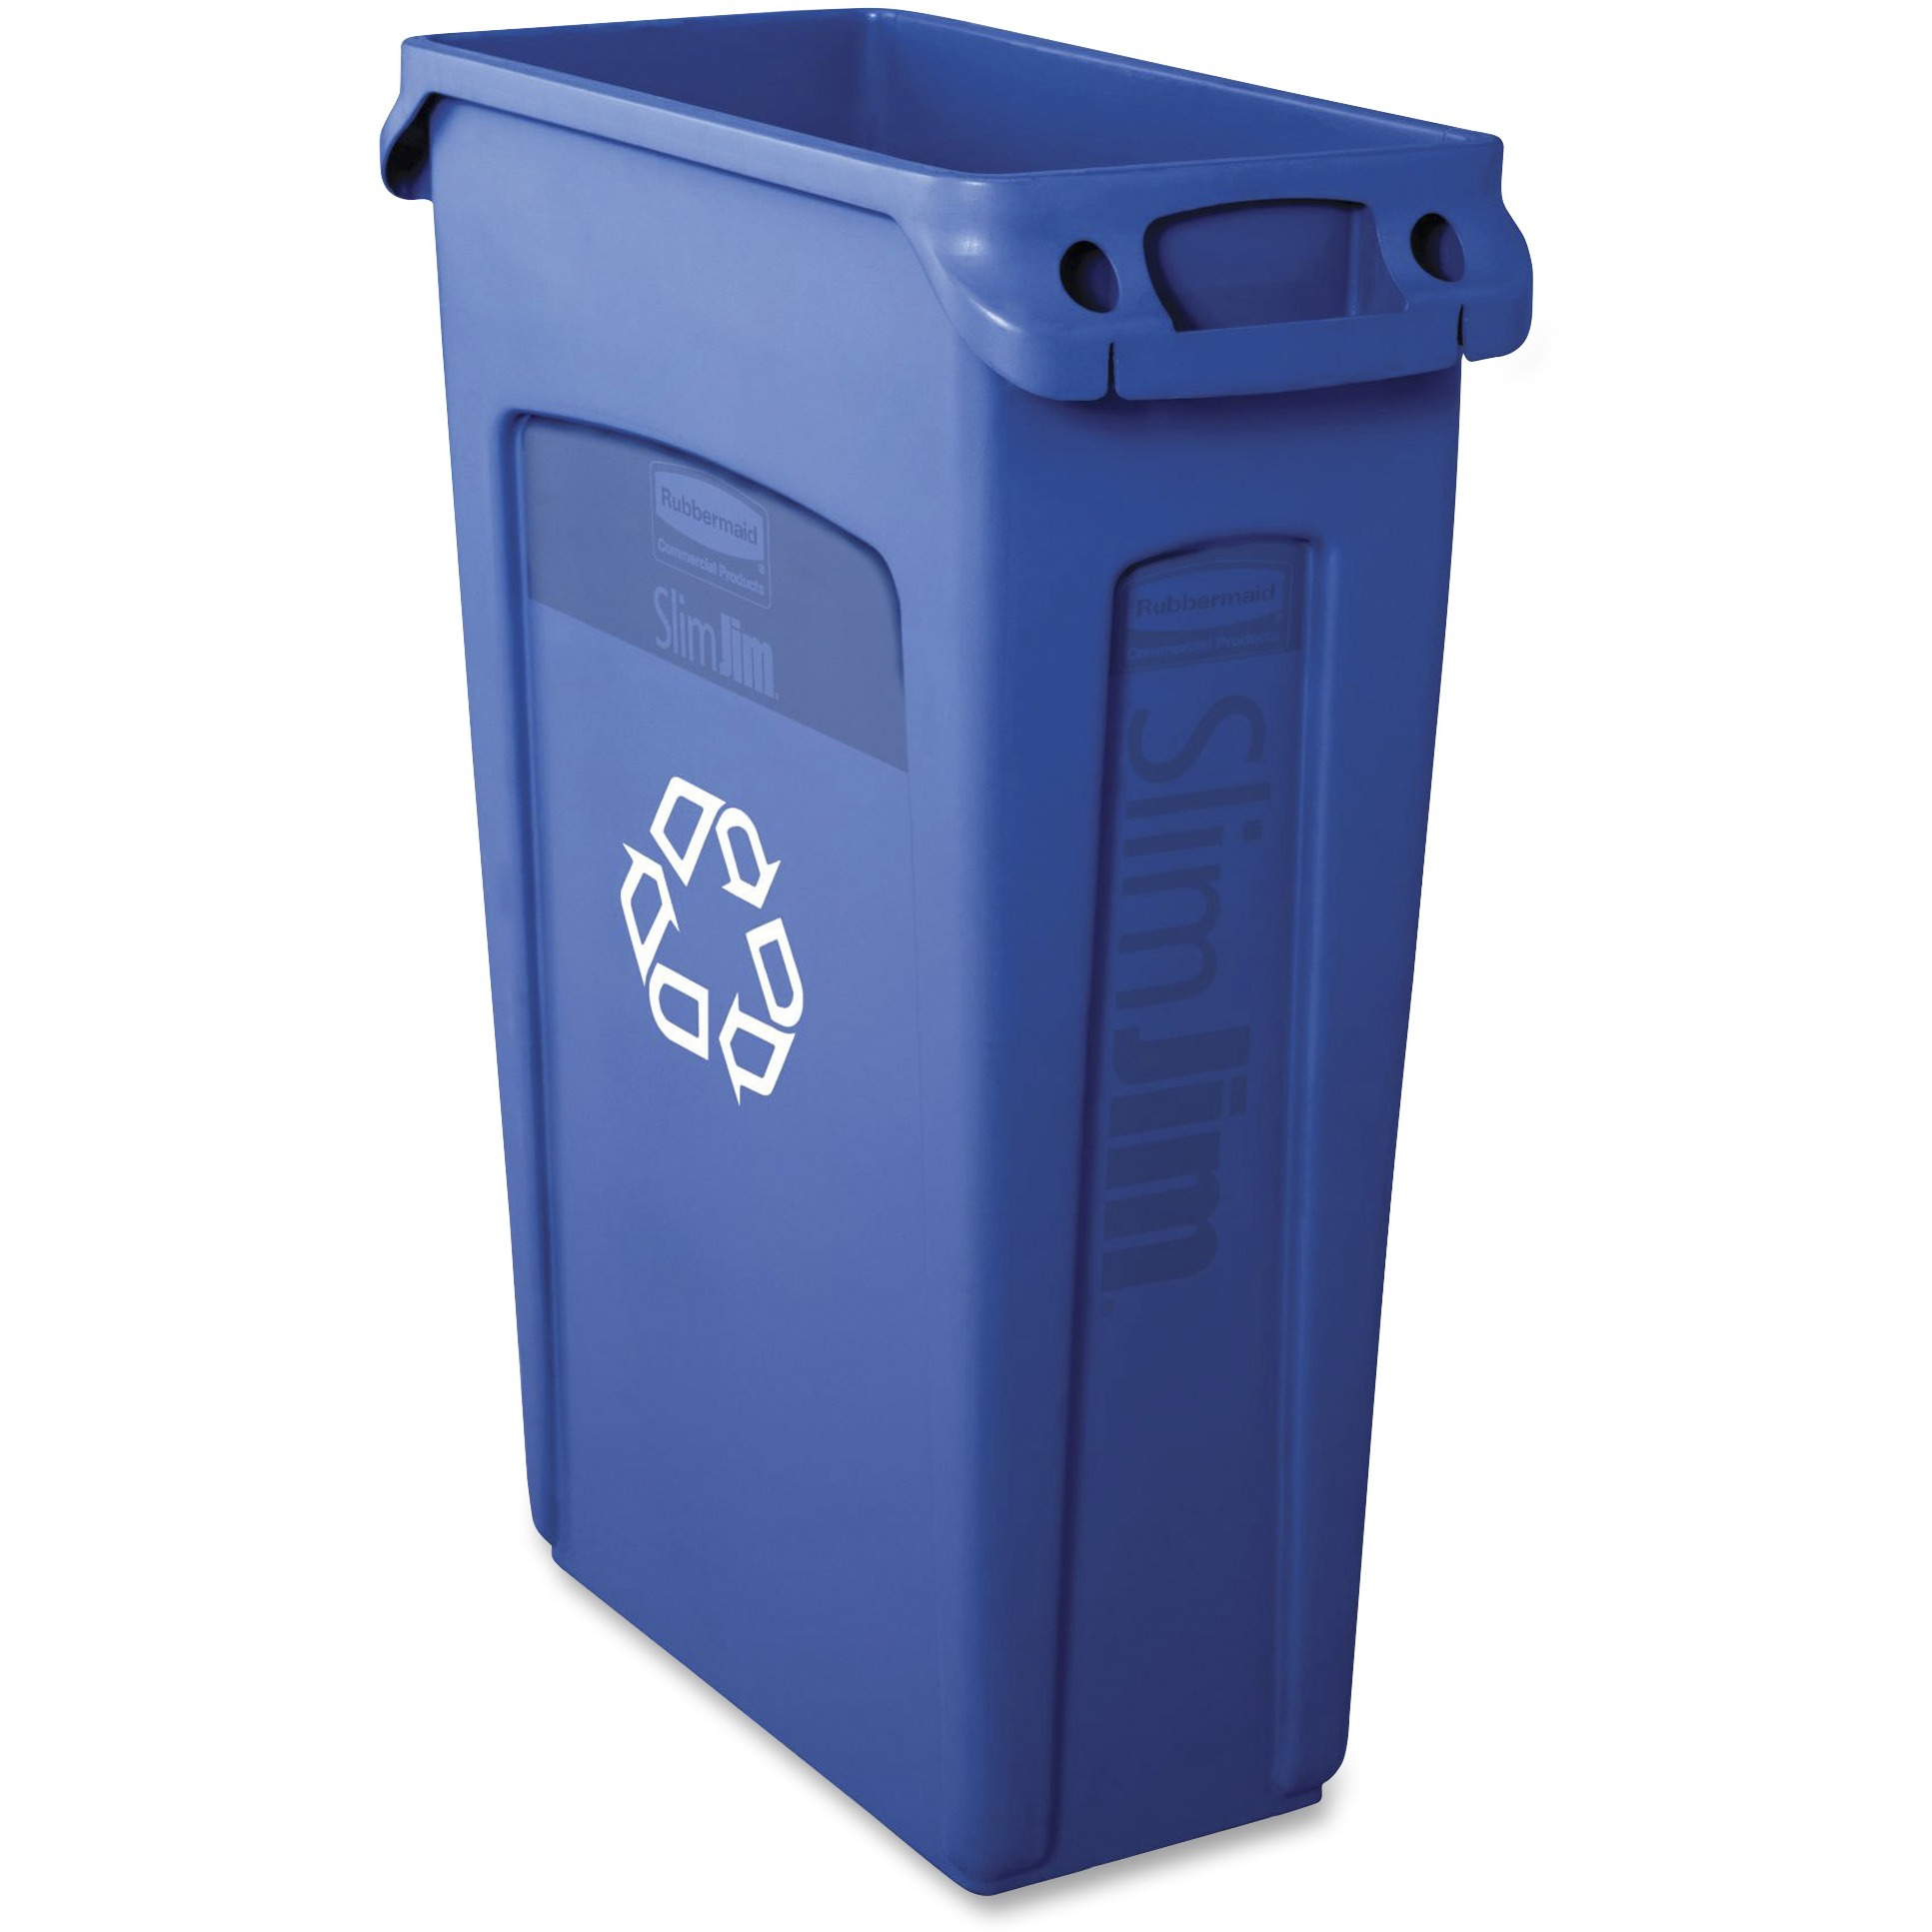 Rubbermaid Commercial, RCP354007BE, Venting Slim Jim Container, 1, Blue